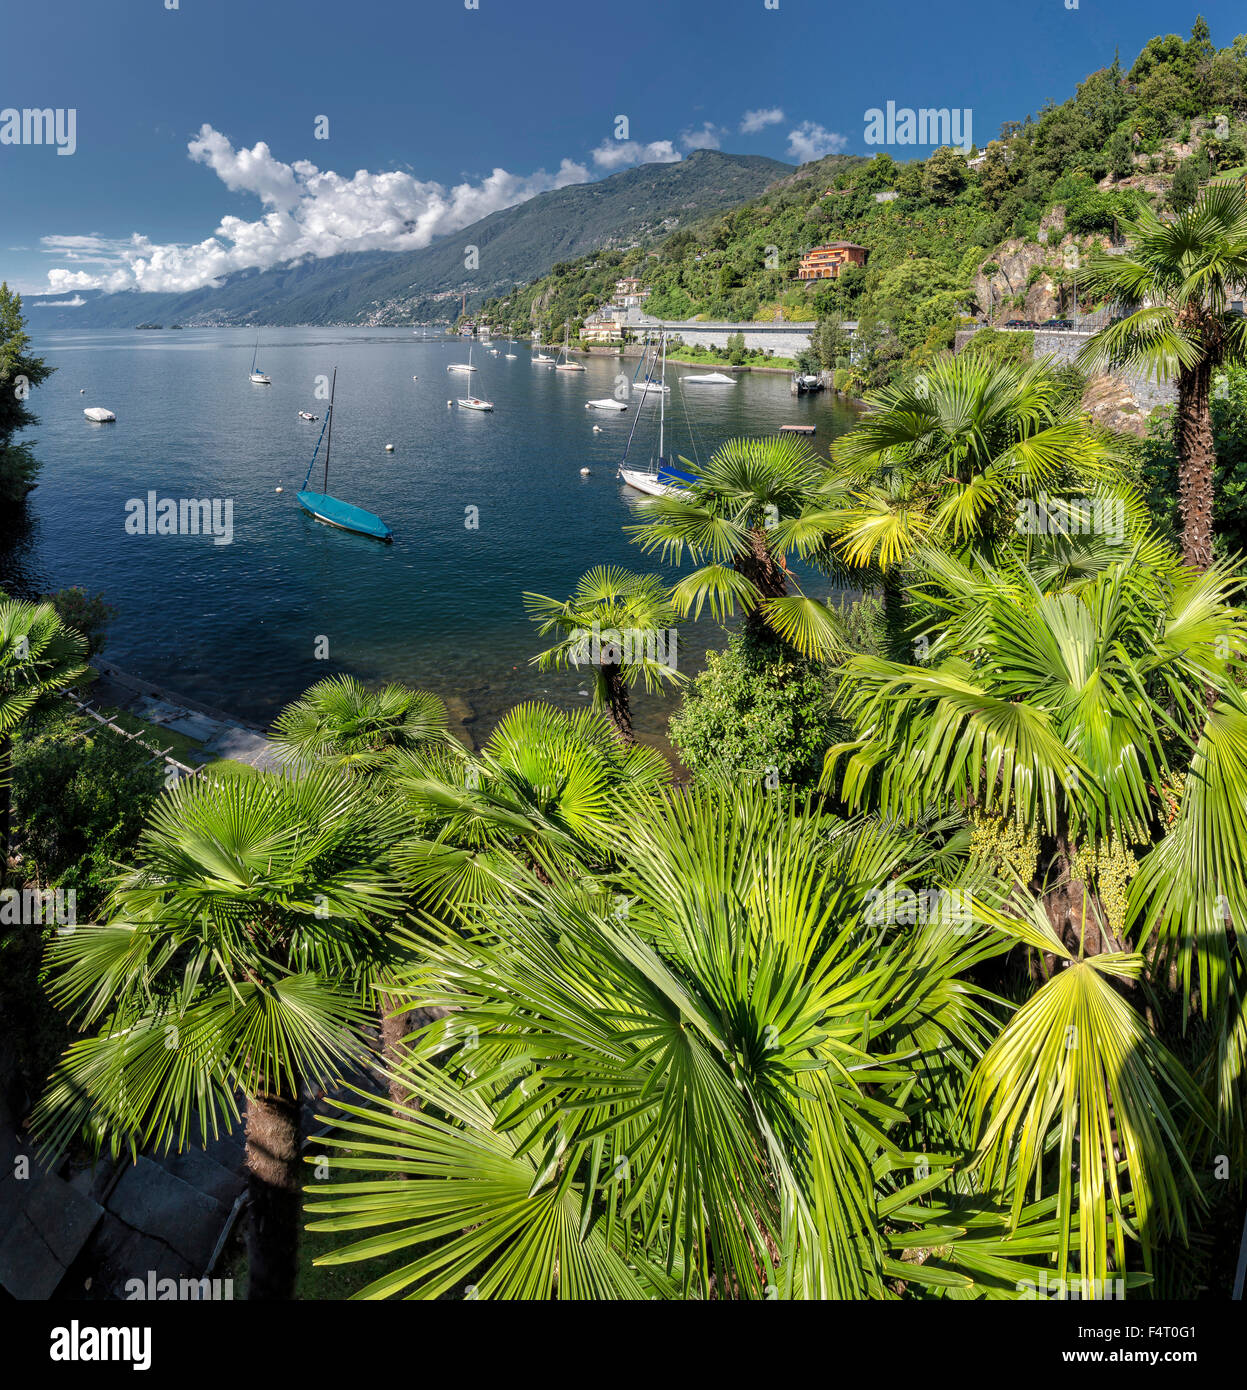 Switzerland, Europe, Ascona, Ticino, Secluded bay, palm trees, Lake Maggiore, landscape, water, trees, summer, mountains, - Stock Image